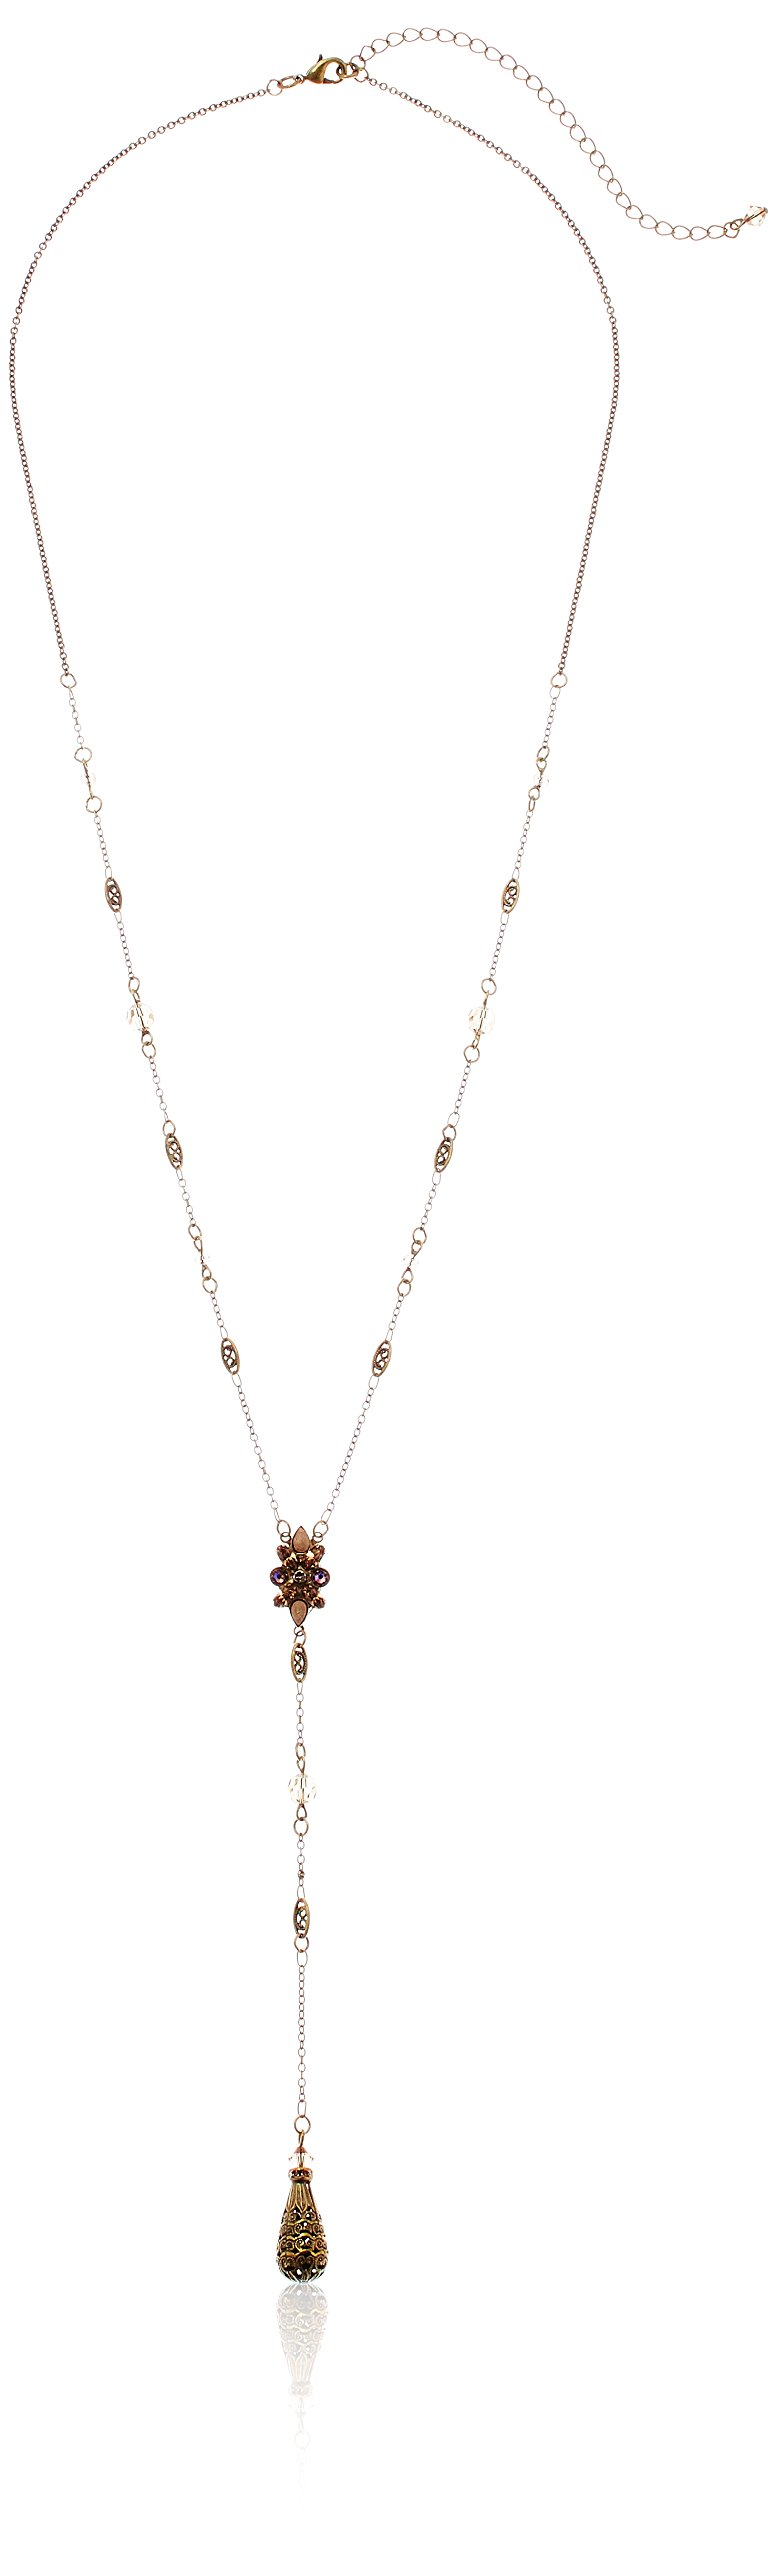 Sorrelli Core Antique Gold Tone Neutral Territory Celestial Filigree Y-Shaped Necklace by Sorrelli